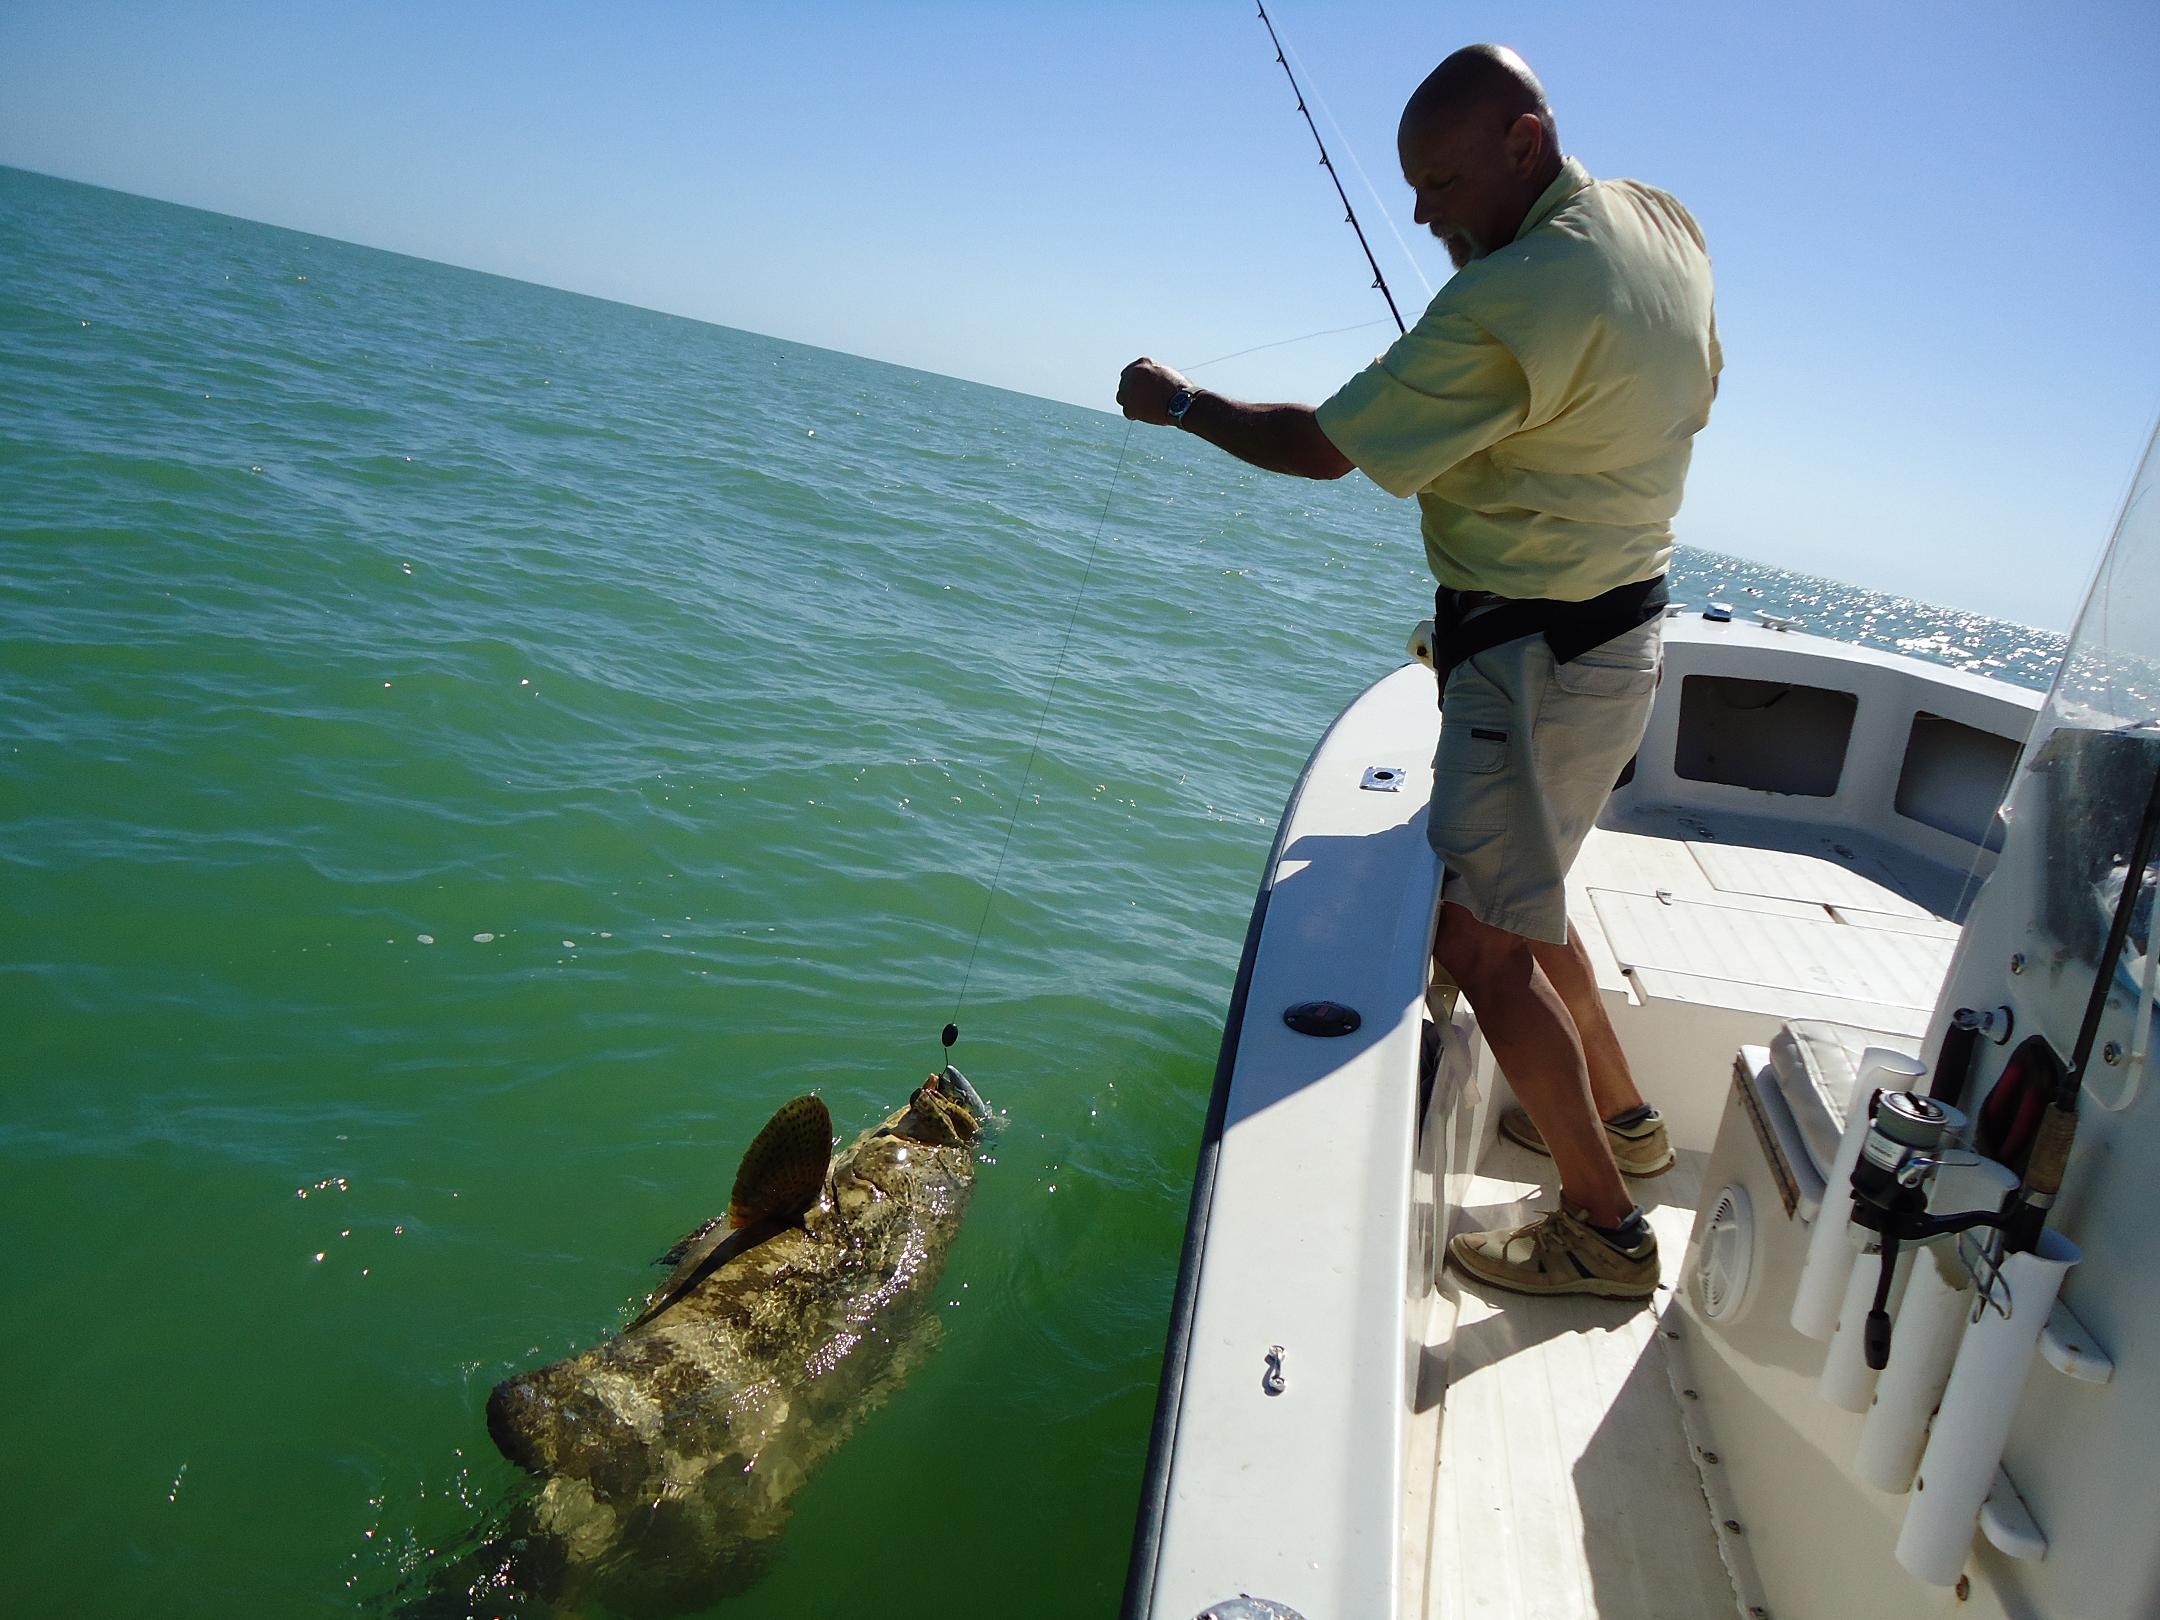 islamorada florida keys fishing report bloodydecks